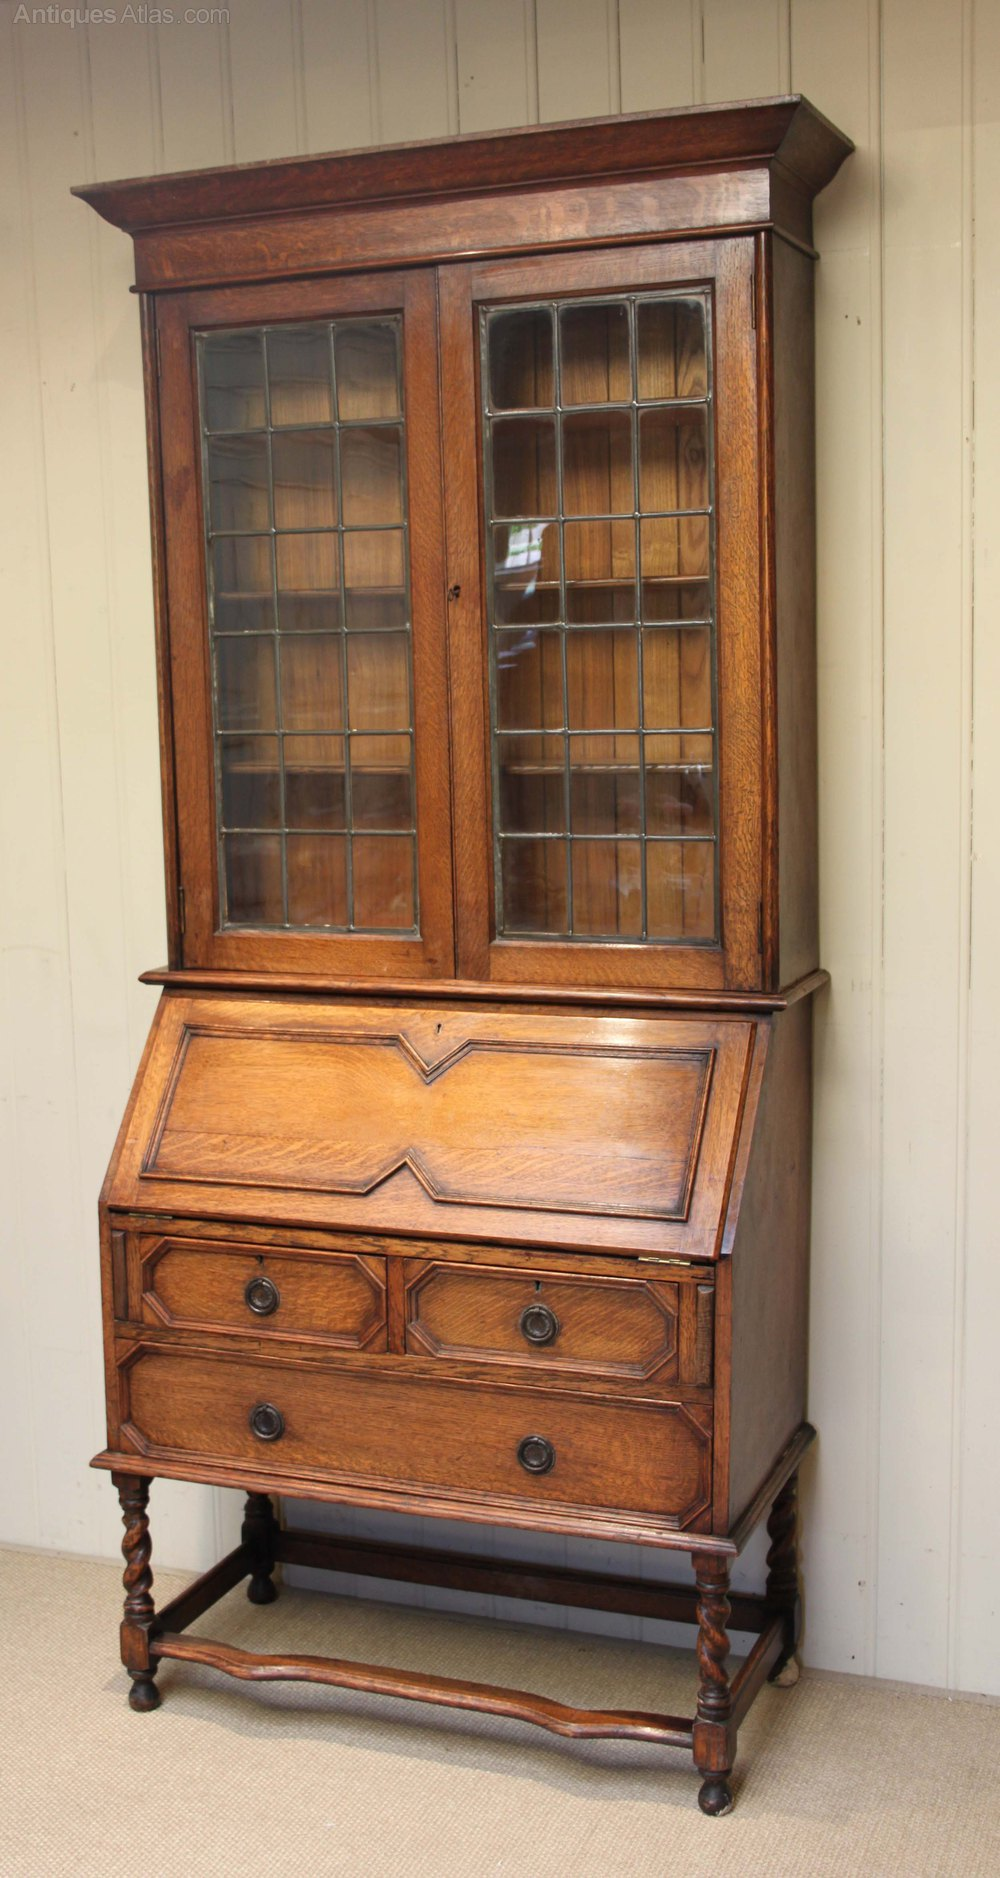 Light Oak Bureau Bookcase Antiques Atlas